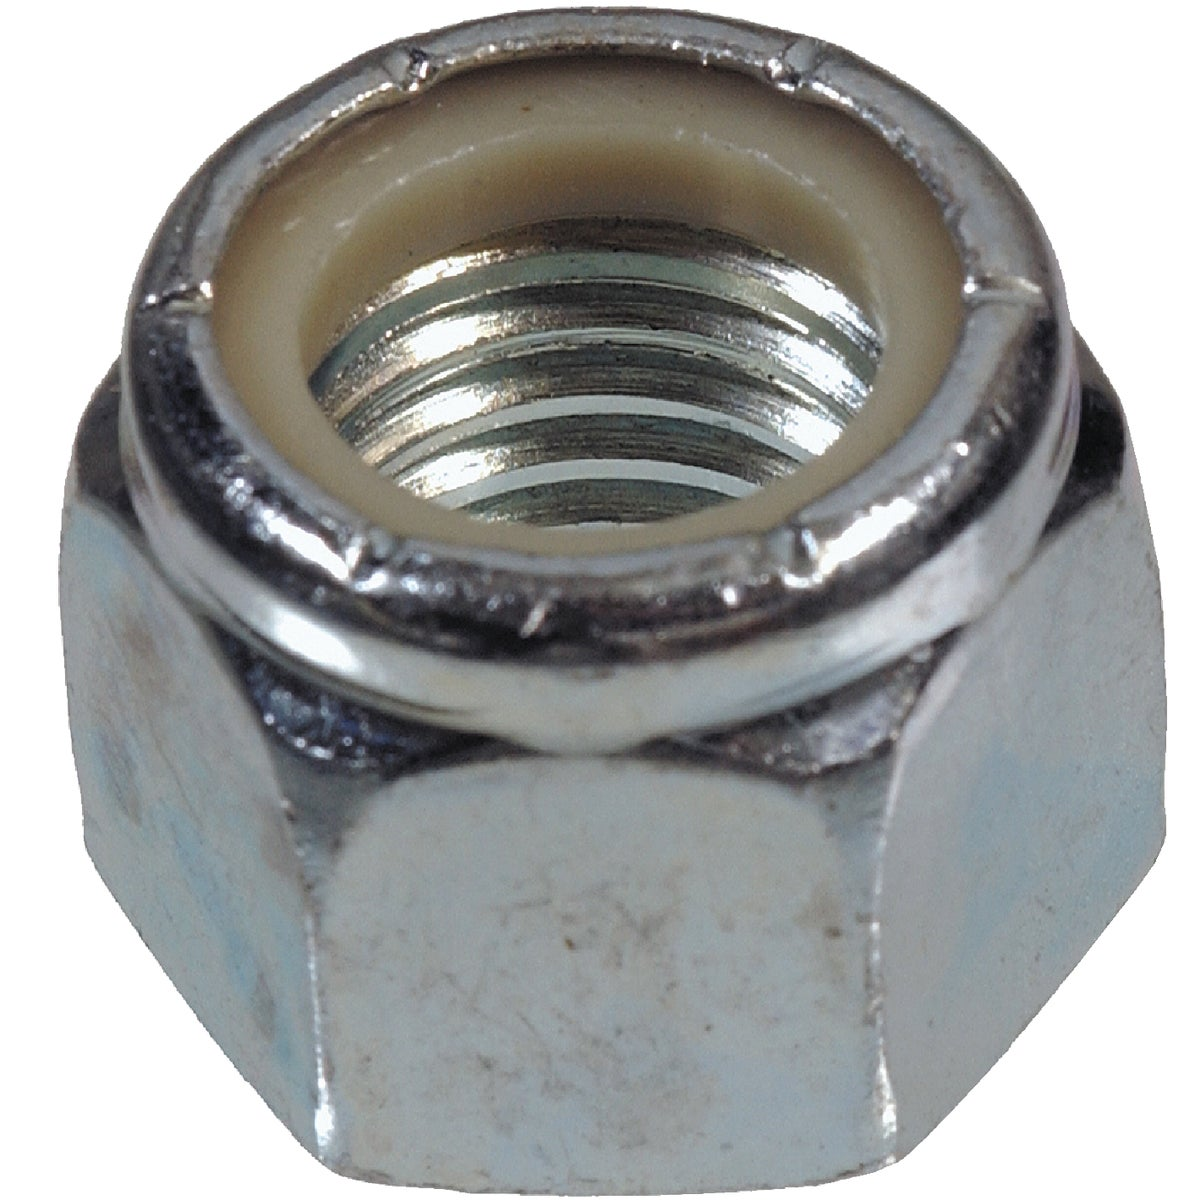 7/16-14 NYLON LOCK NUT